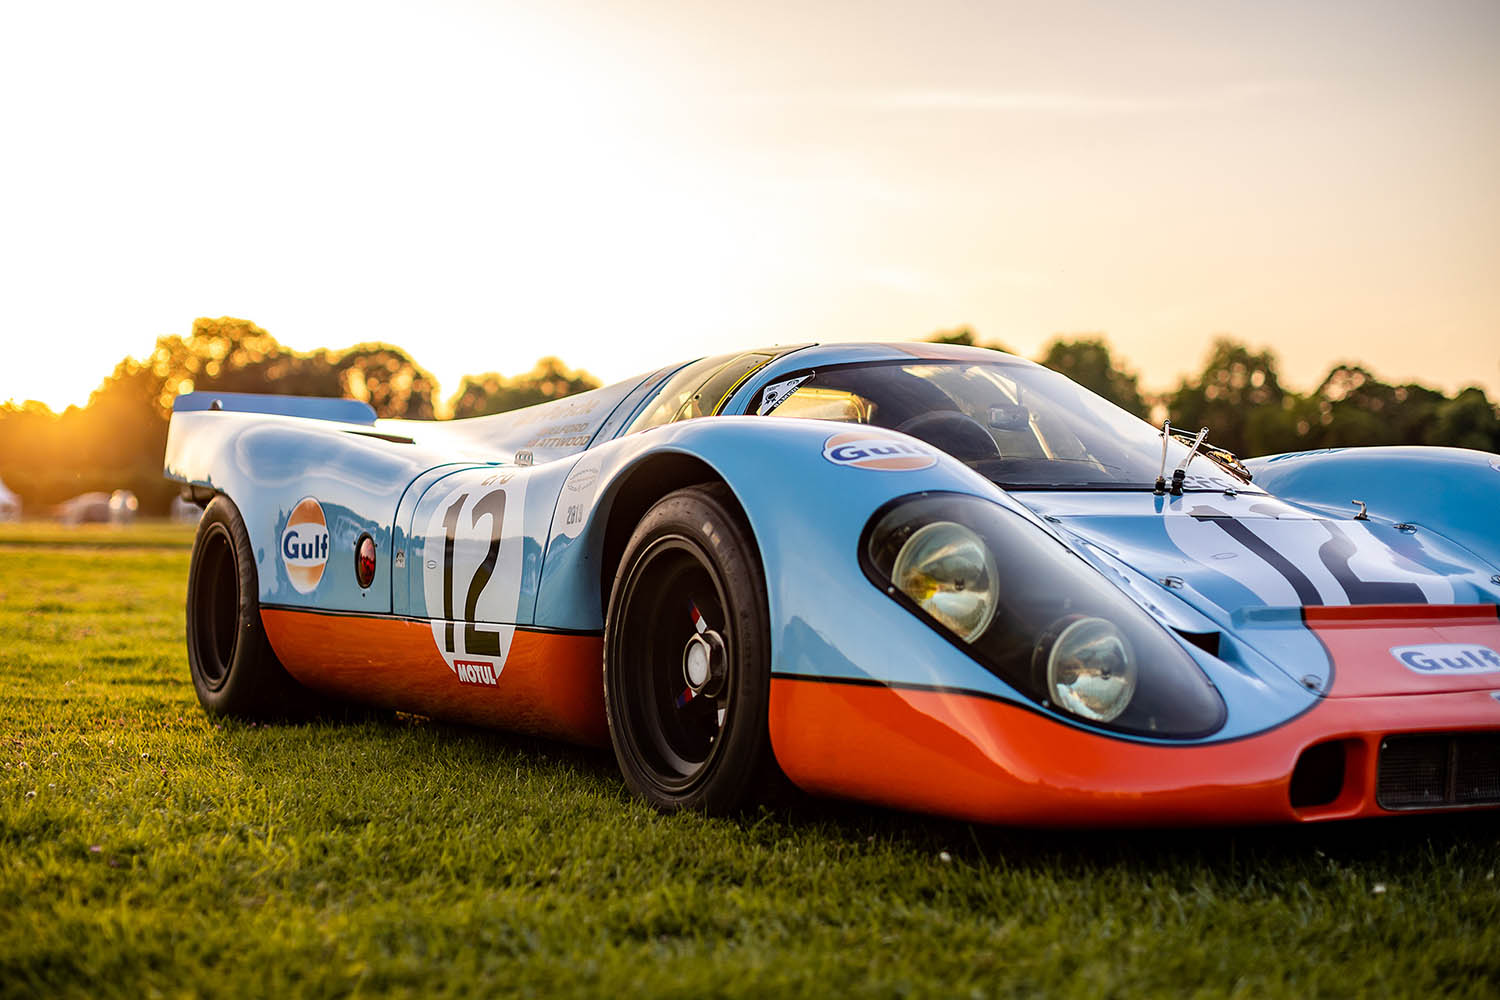 2019_PeterAuto_Chantilly_AlexisGoure_0249.jpg